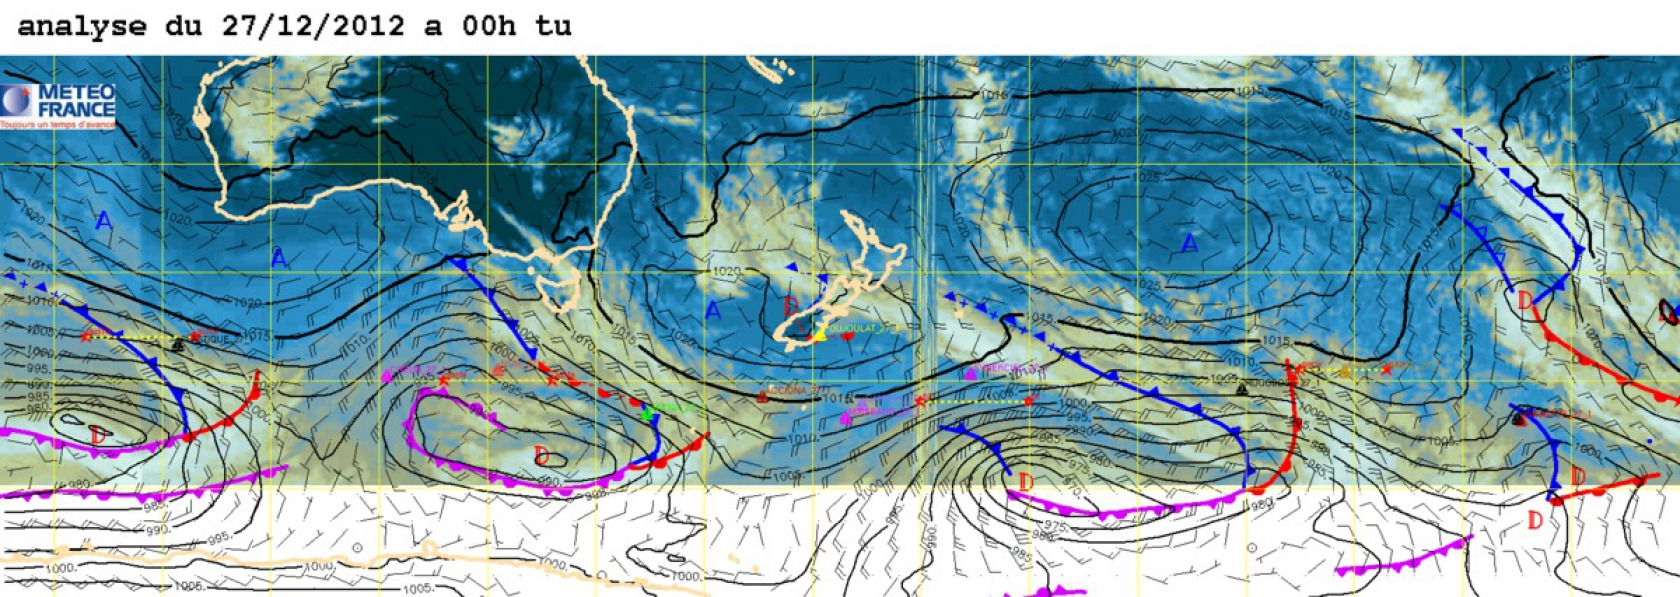 Weather analysis for the 27th December 2012 at 00 UTC.